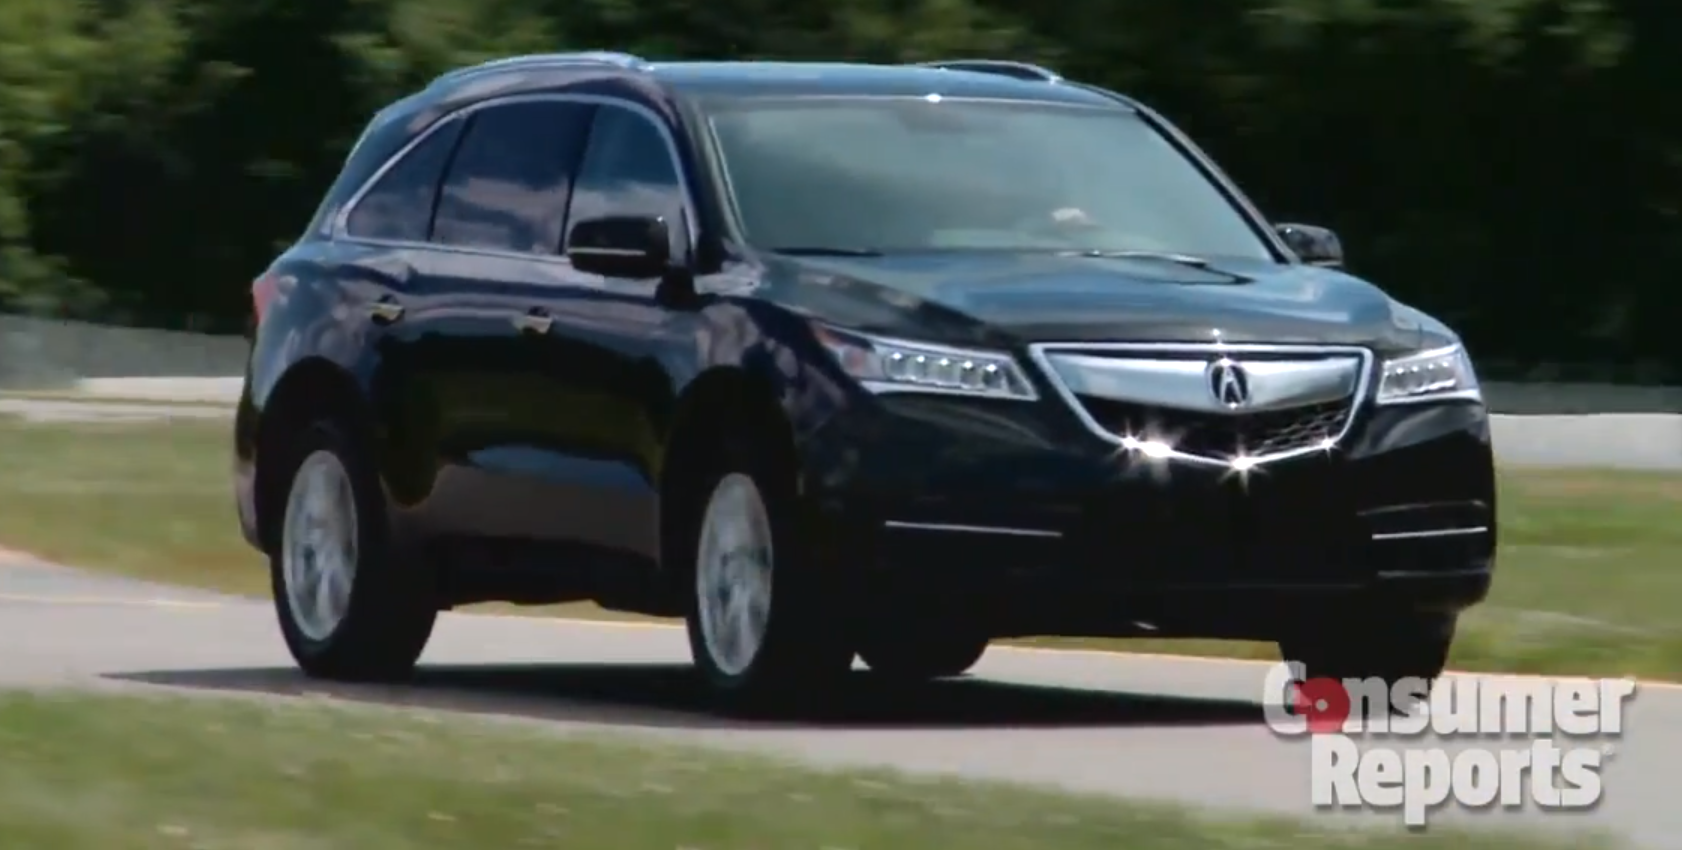 2014 Acura Mdx Gets Positive Review From Consumer Reports